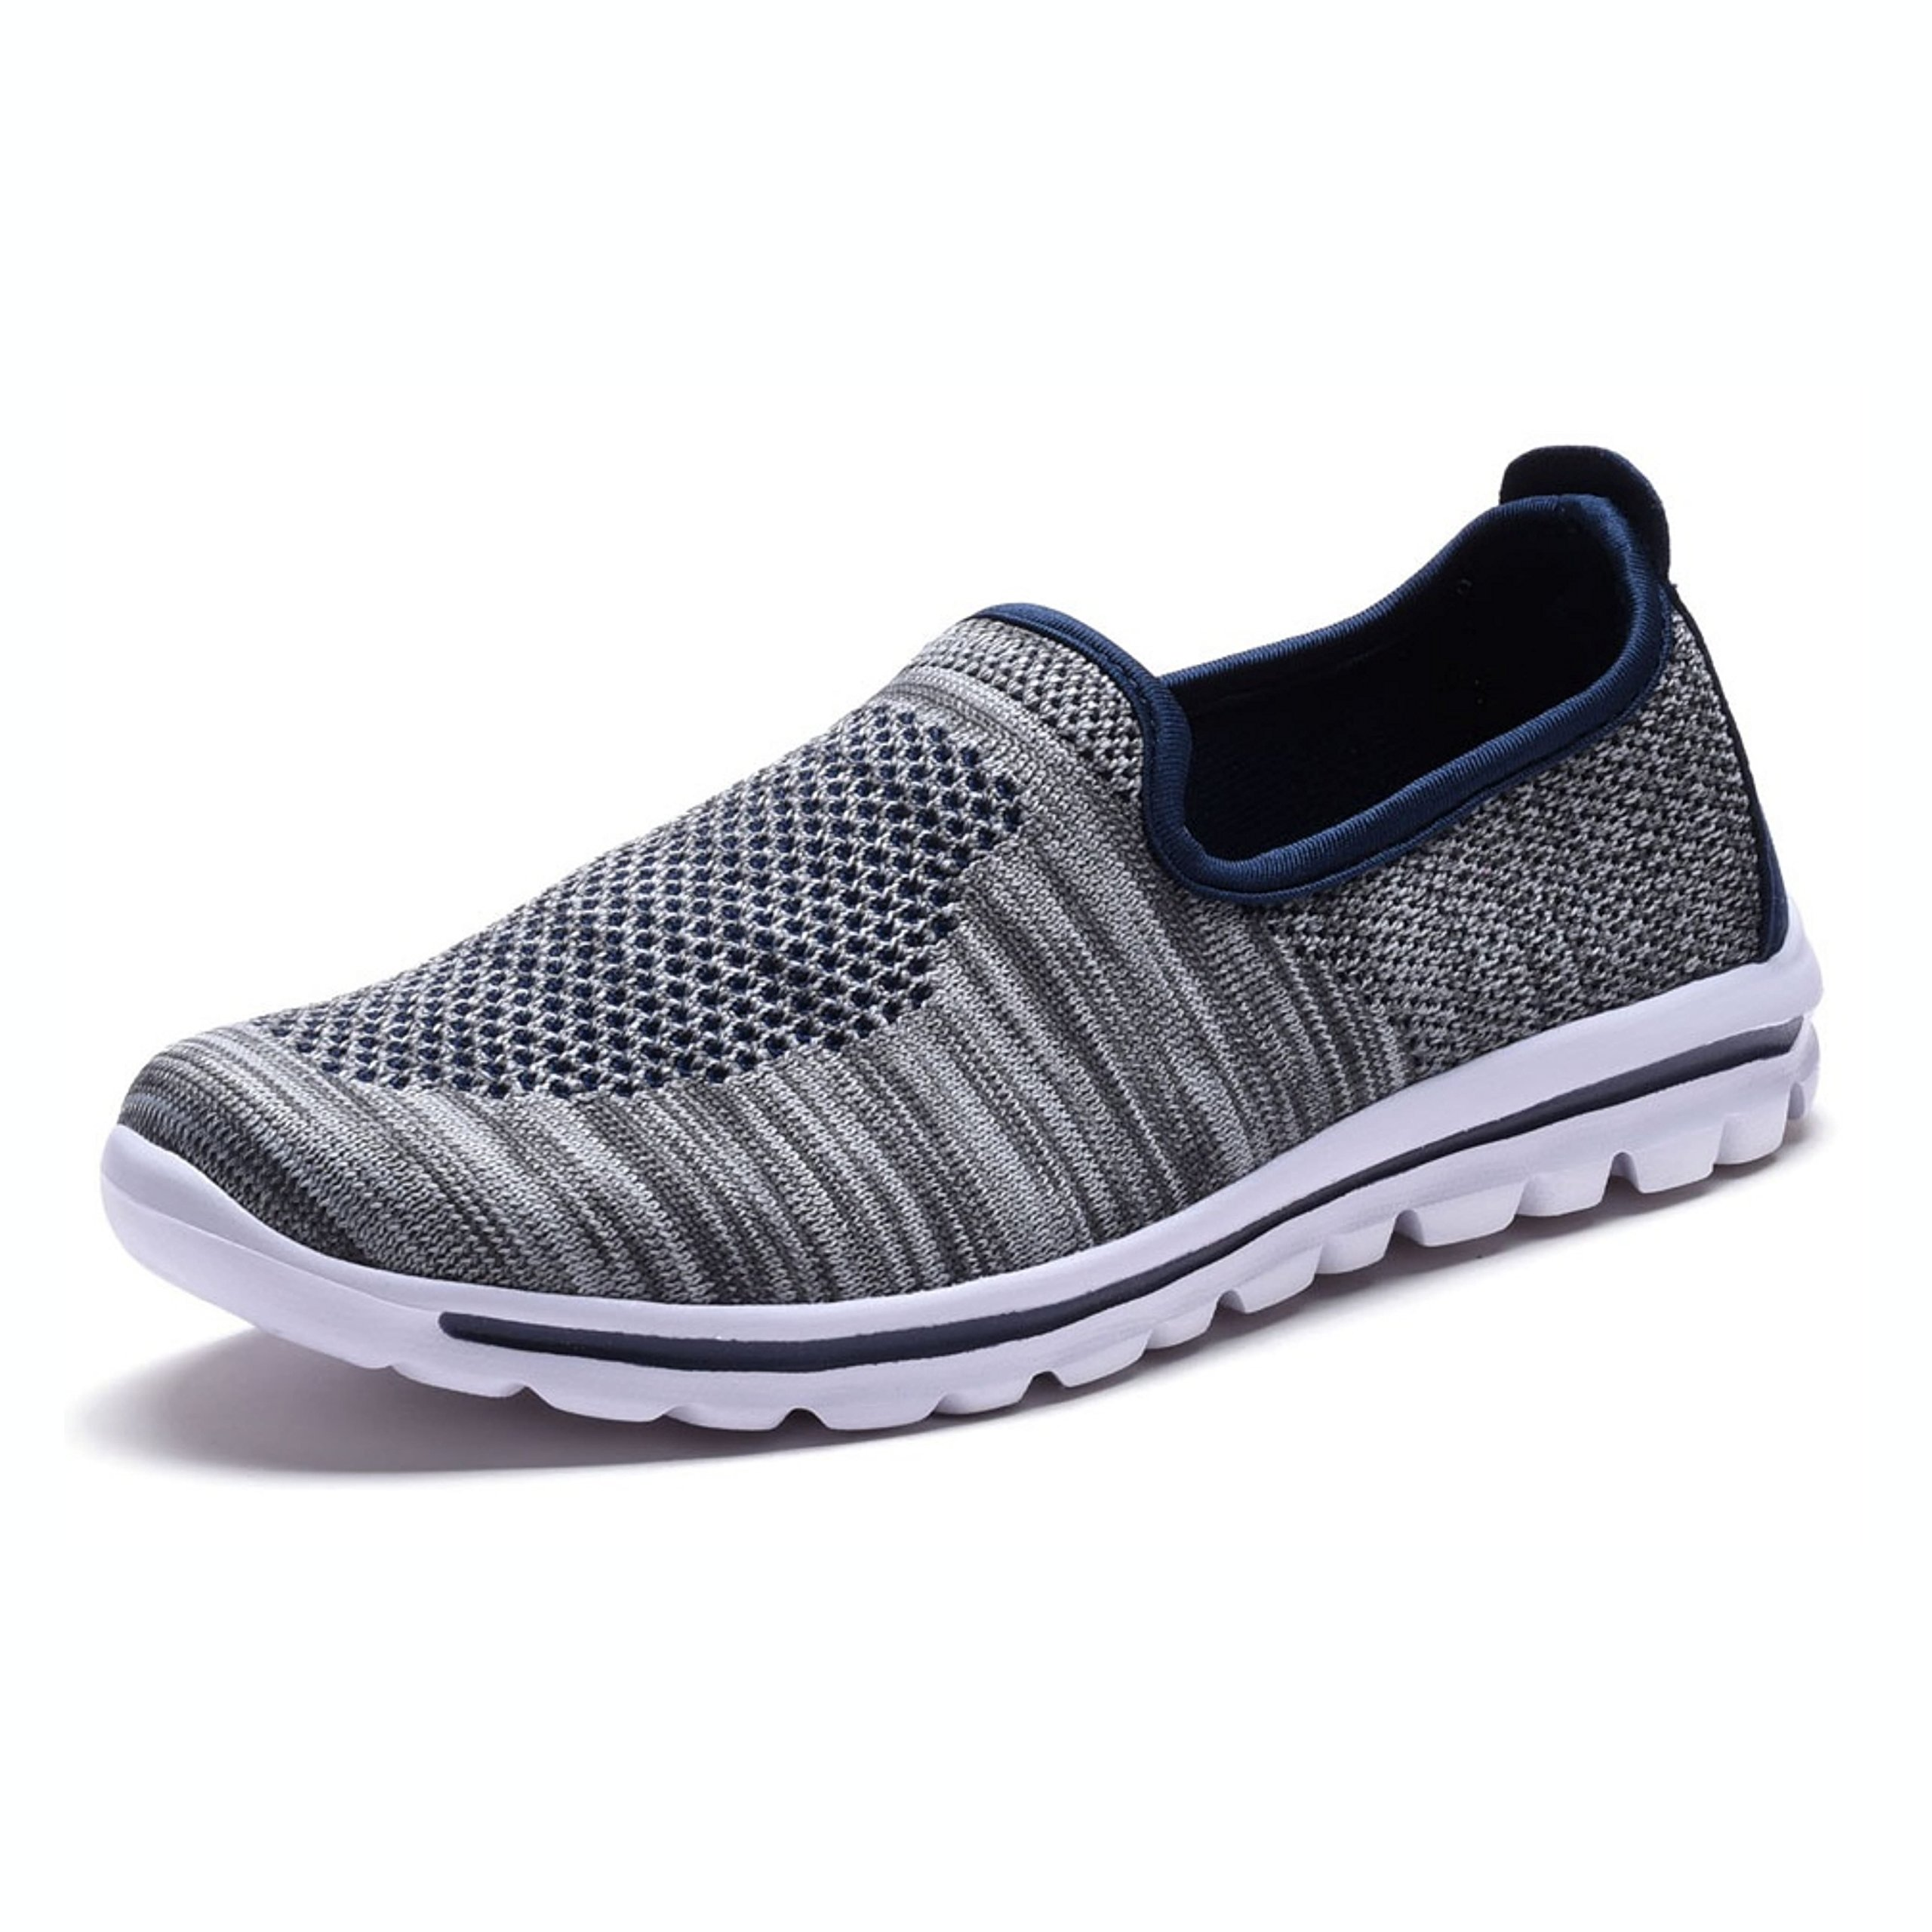 DailyShoes Women's Fit Mesh Slip-on Style Walking Shoes with Memory Foam Insoles- Breathable Mesh - Durable Soles - Reliable Traction - Perfect for Walks and Jogs, Gray Navy Mesh, 8 B(M) US